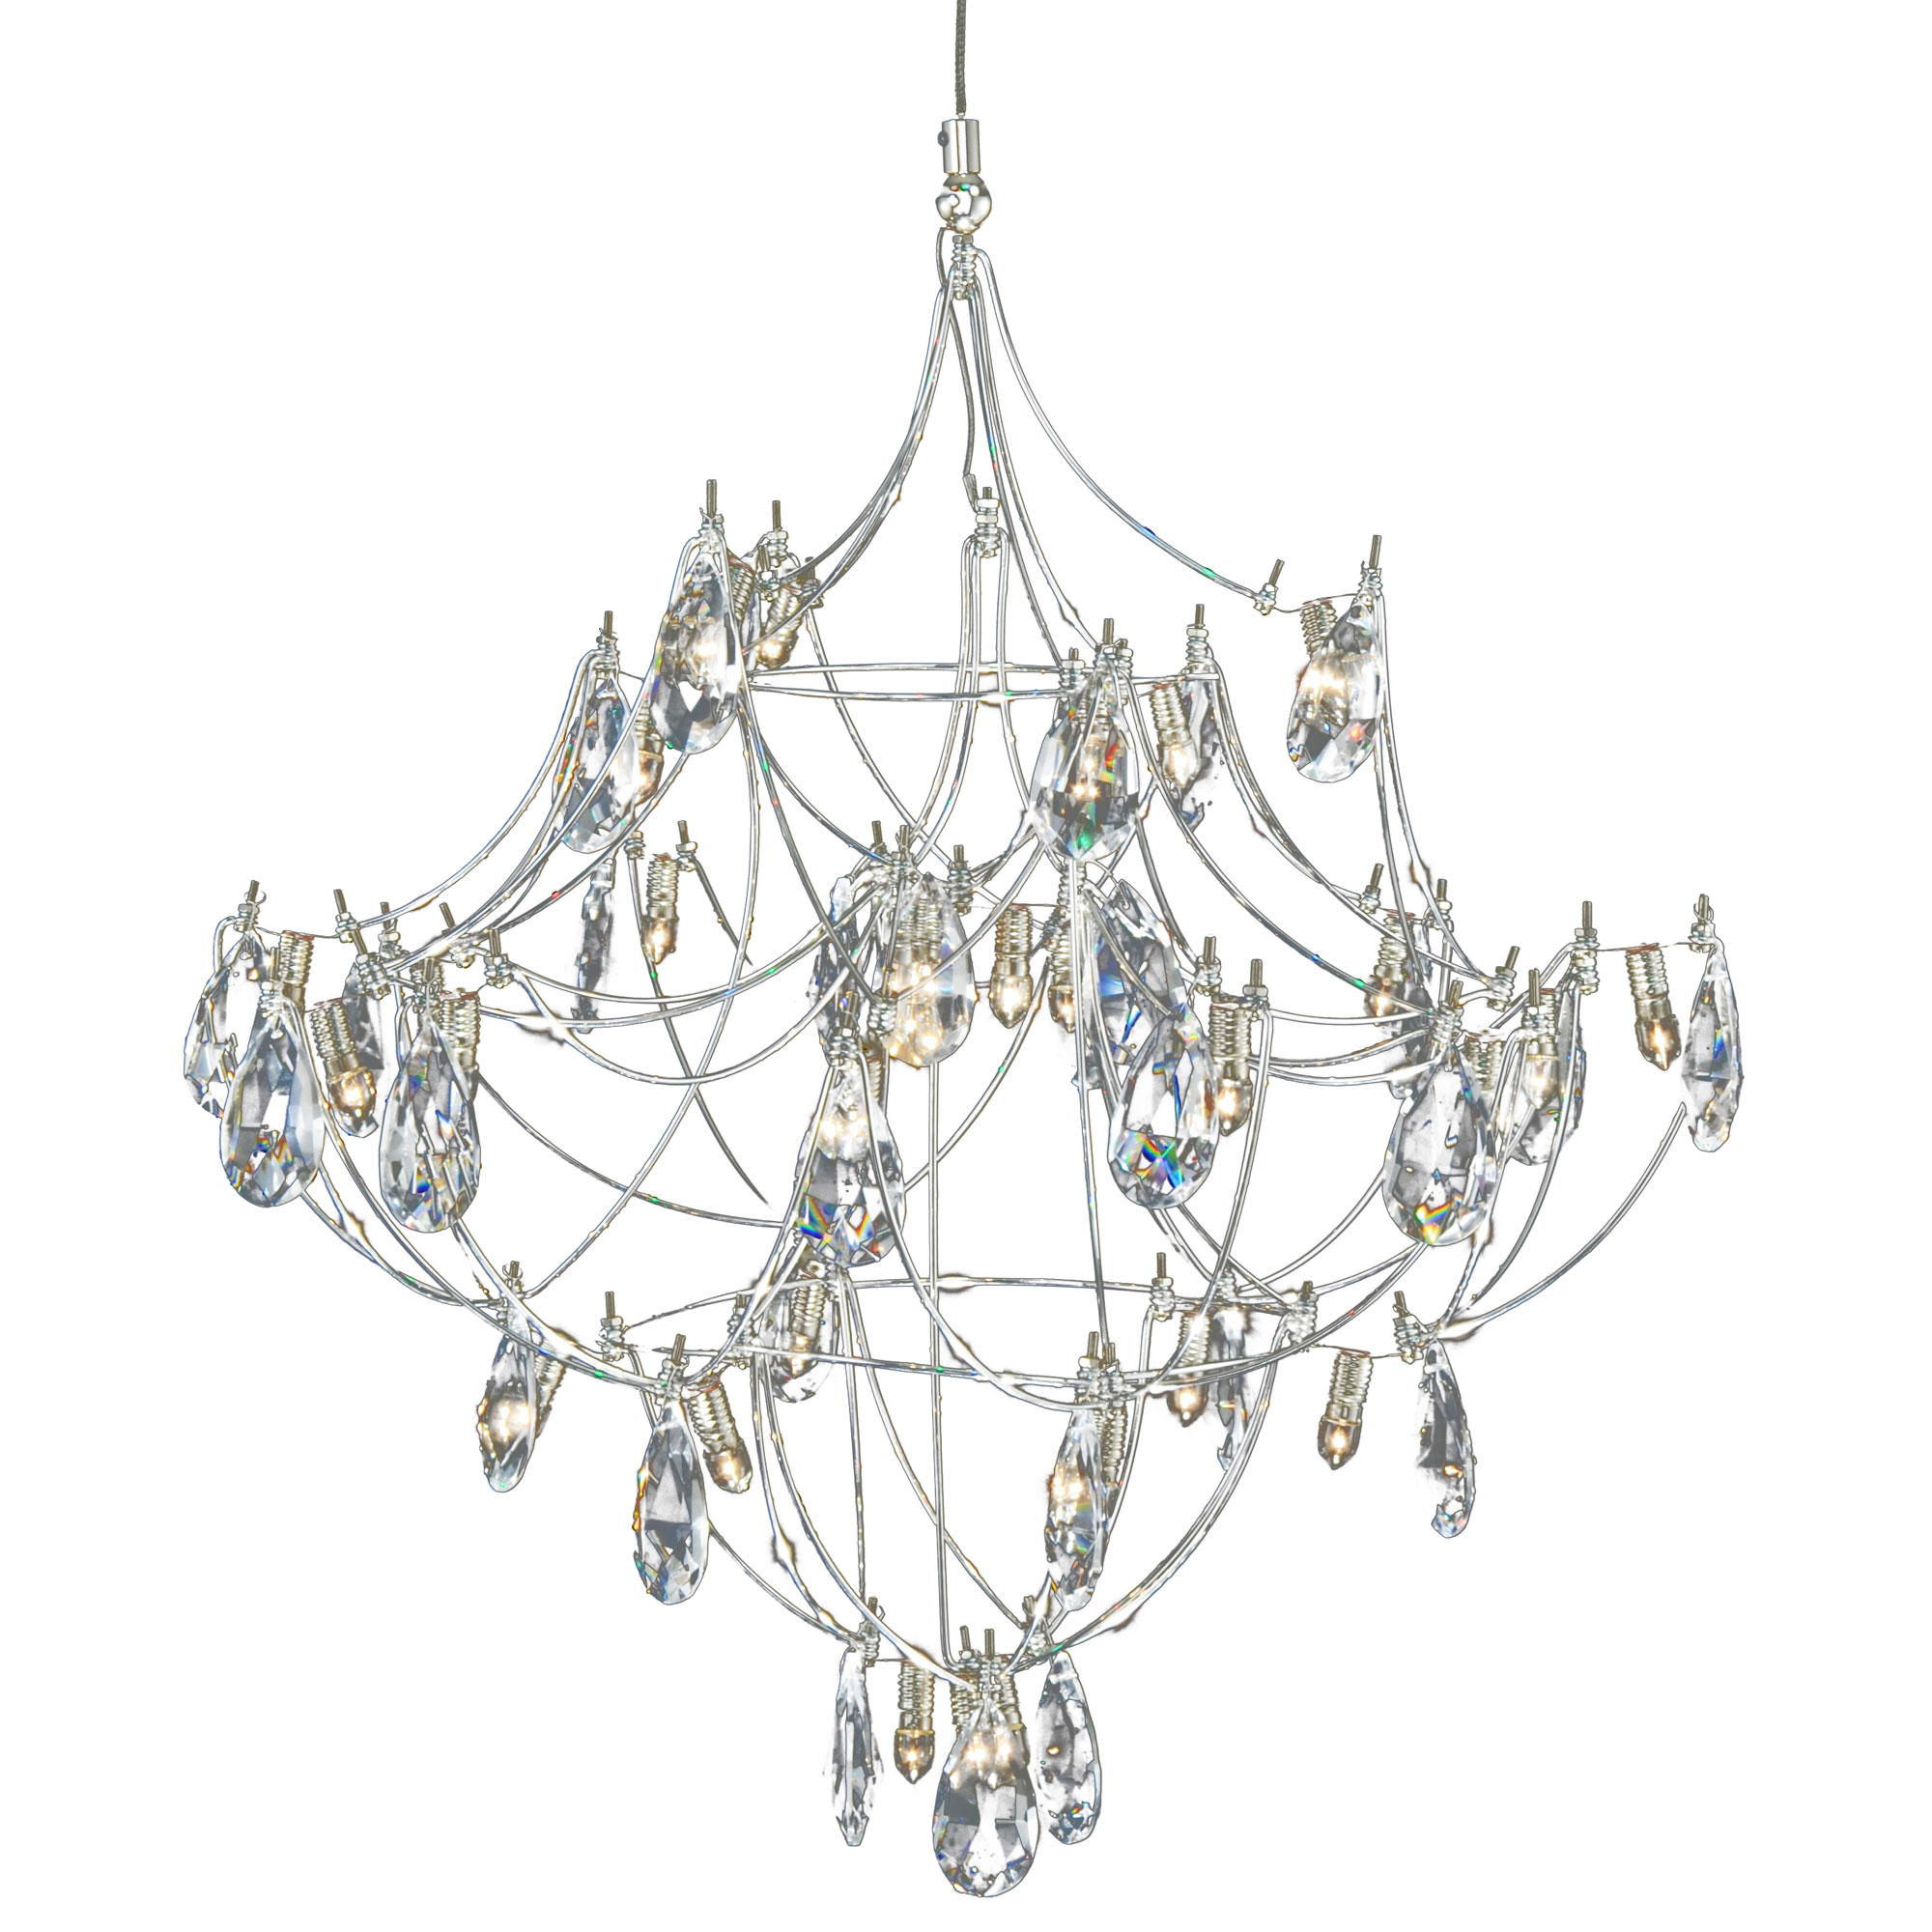 Galaxy Lighting Fj Crystal Galaxy Pendant By Pureedge Lighting Fj Cryga16 12 Sn